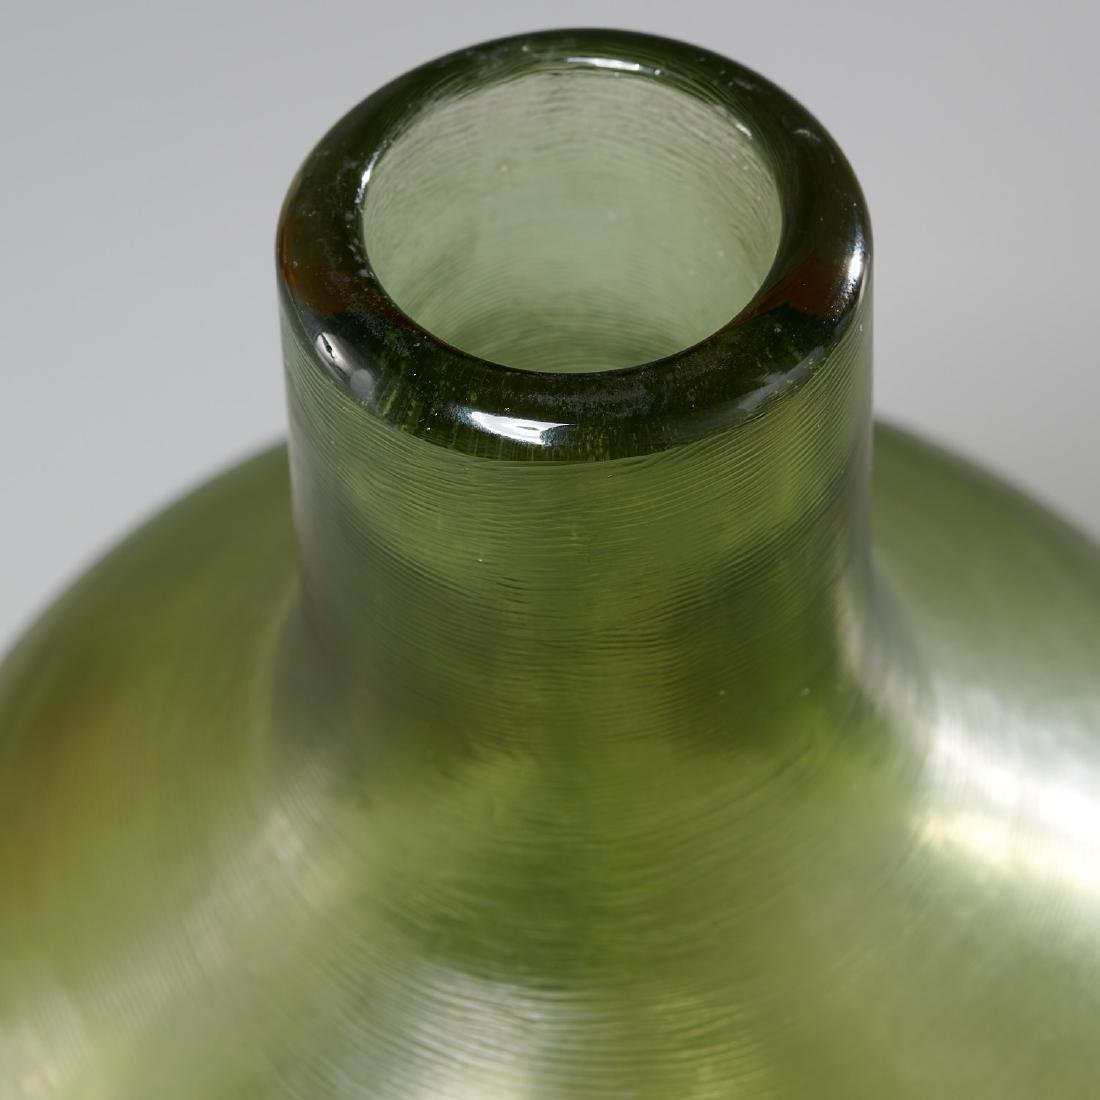 Paolo Venini inciso bottle and stopper - 3